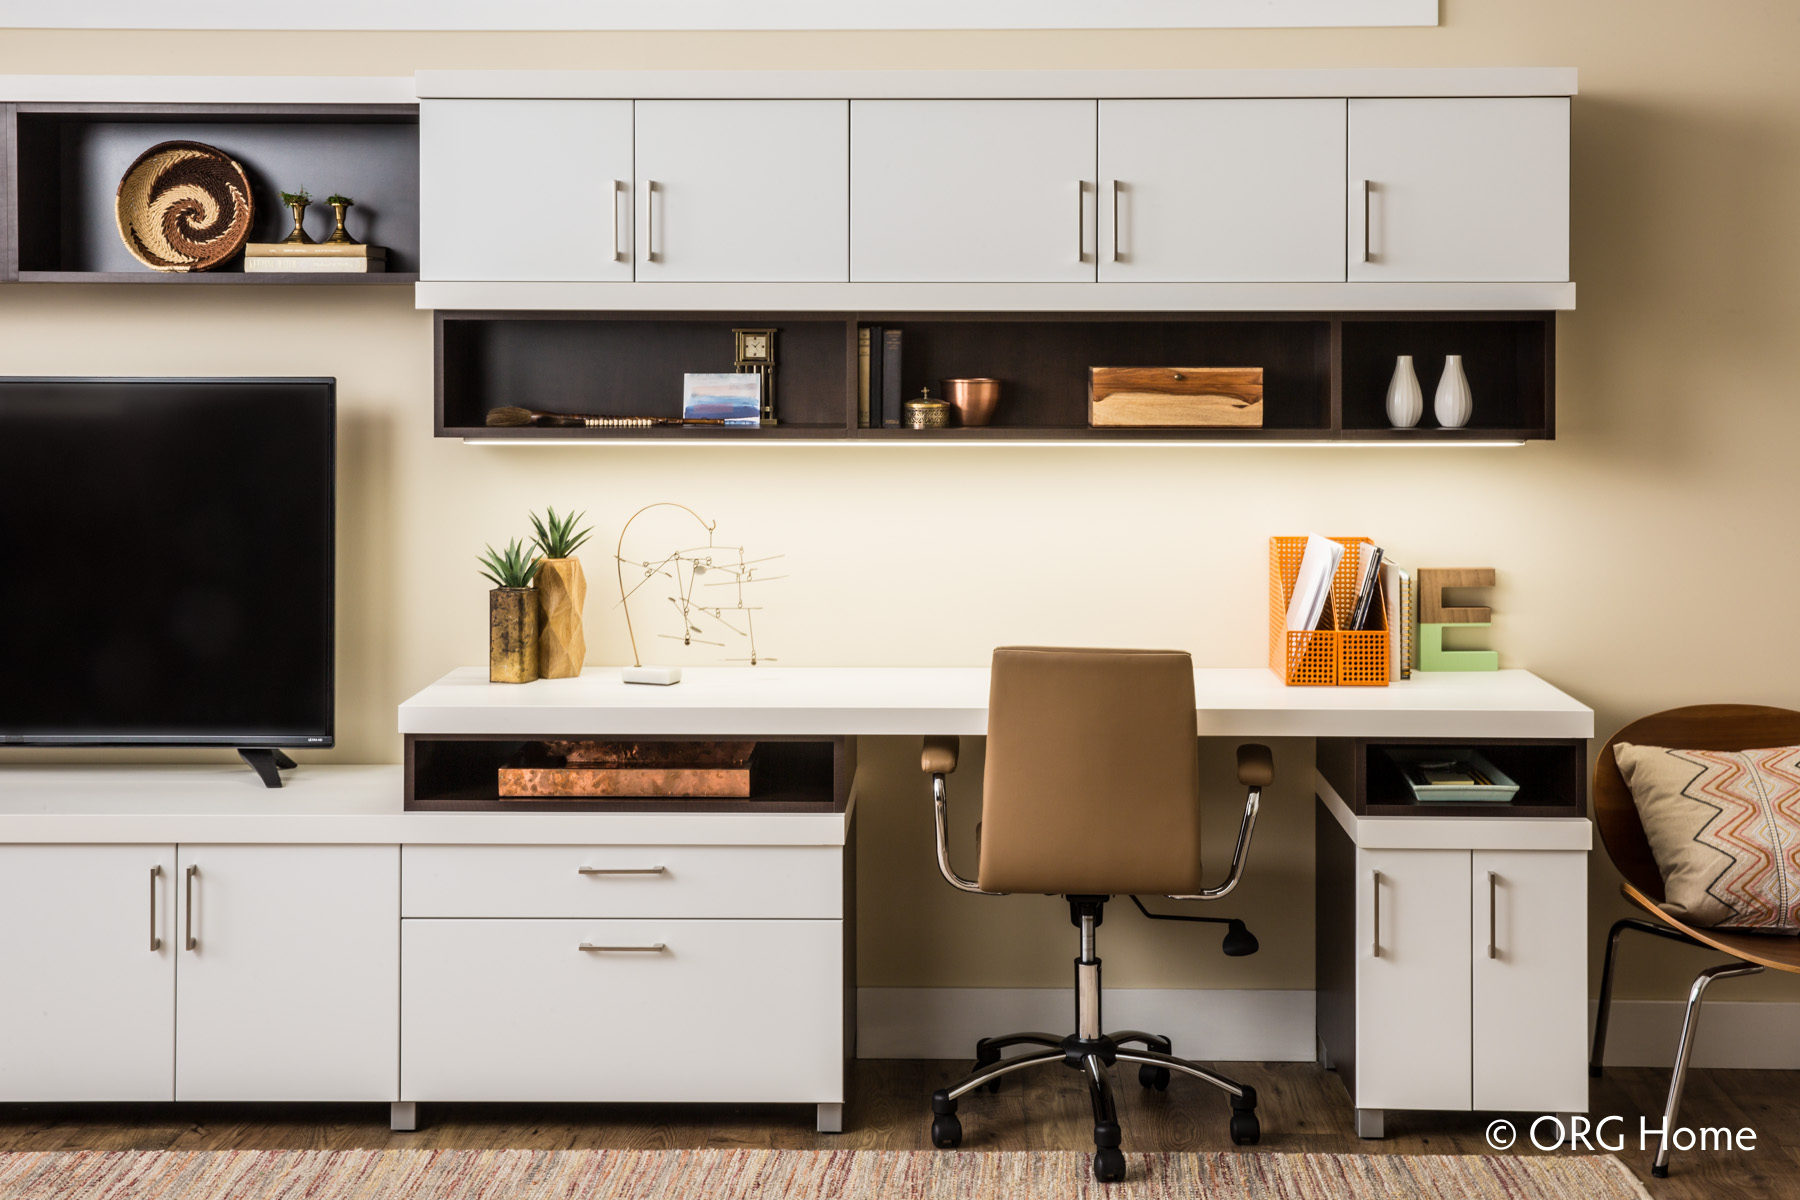 home office cabinetry. White Storage Cabinets In Home Office Cabinetry